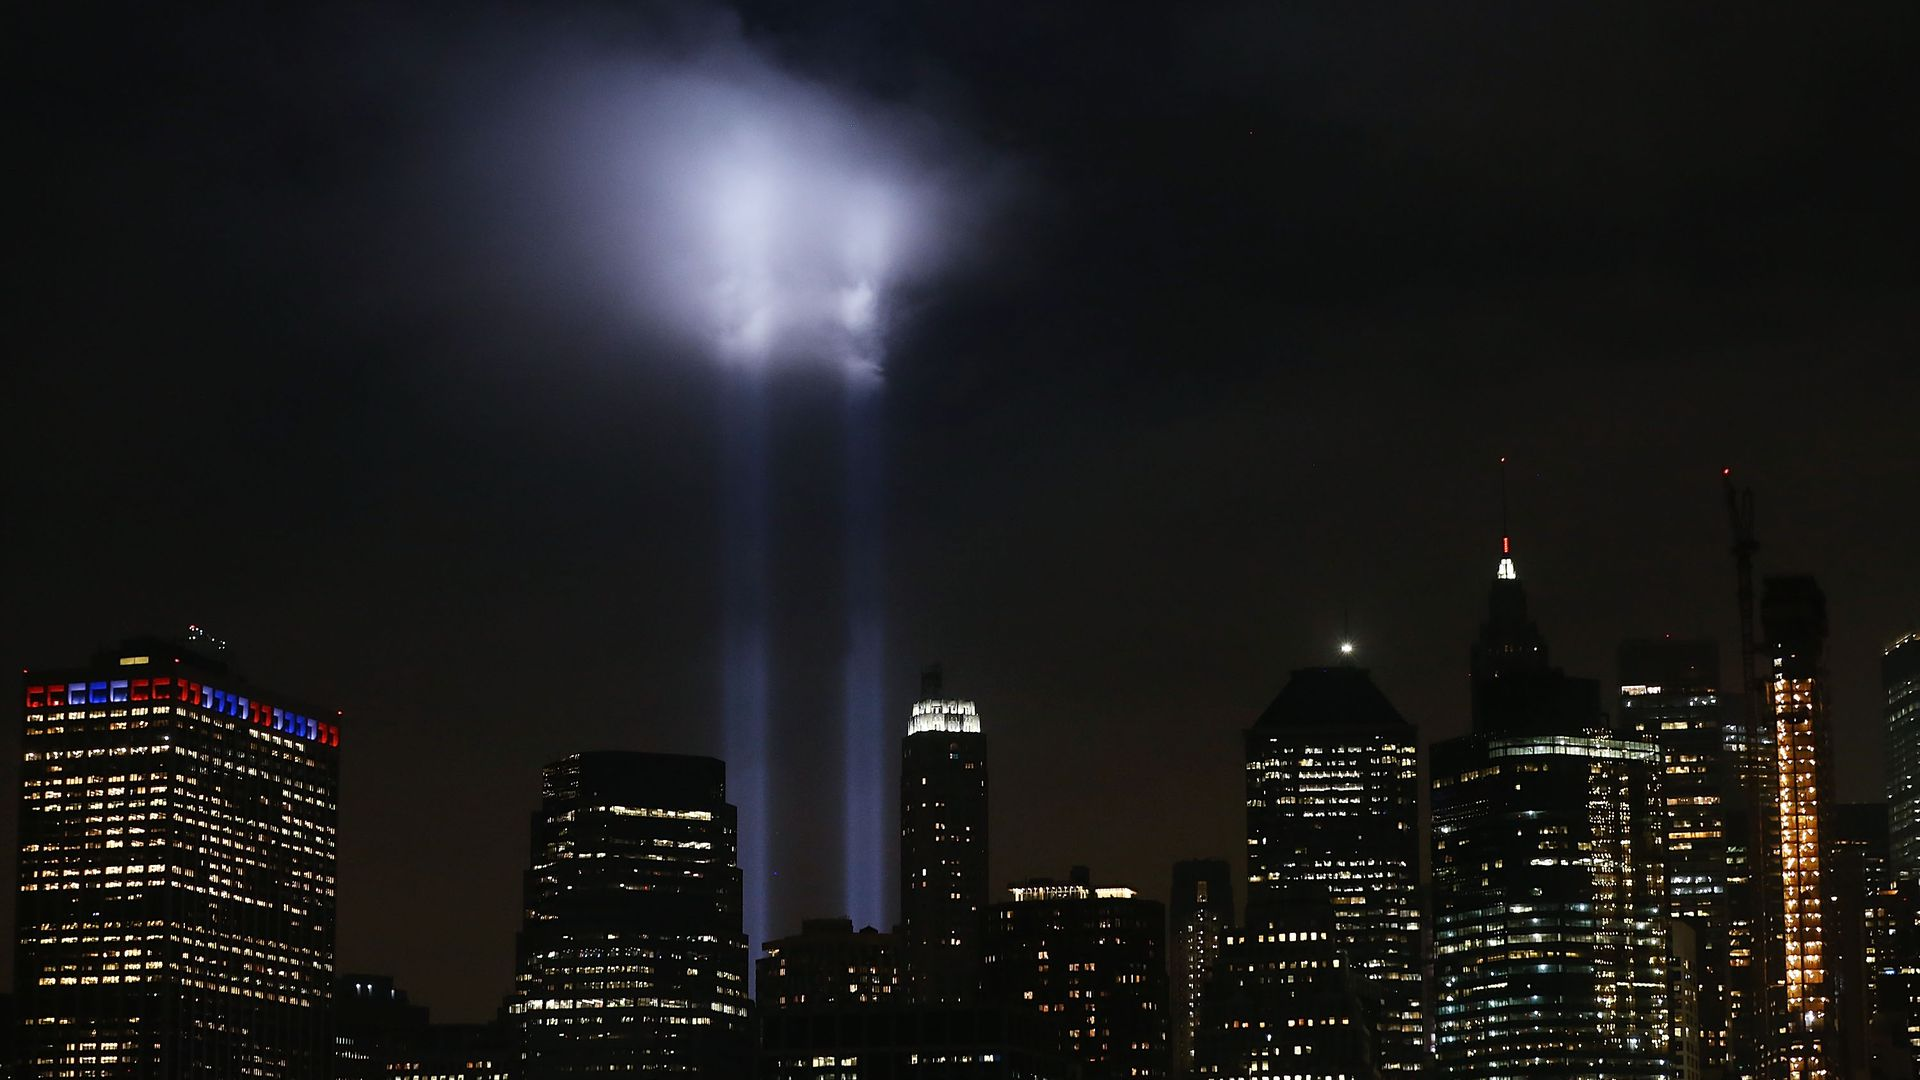 Twin towers' absence highlighted with spotlights in the night sky.